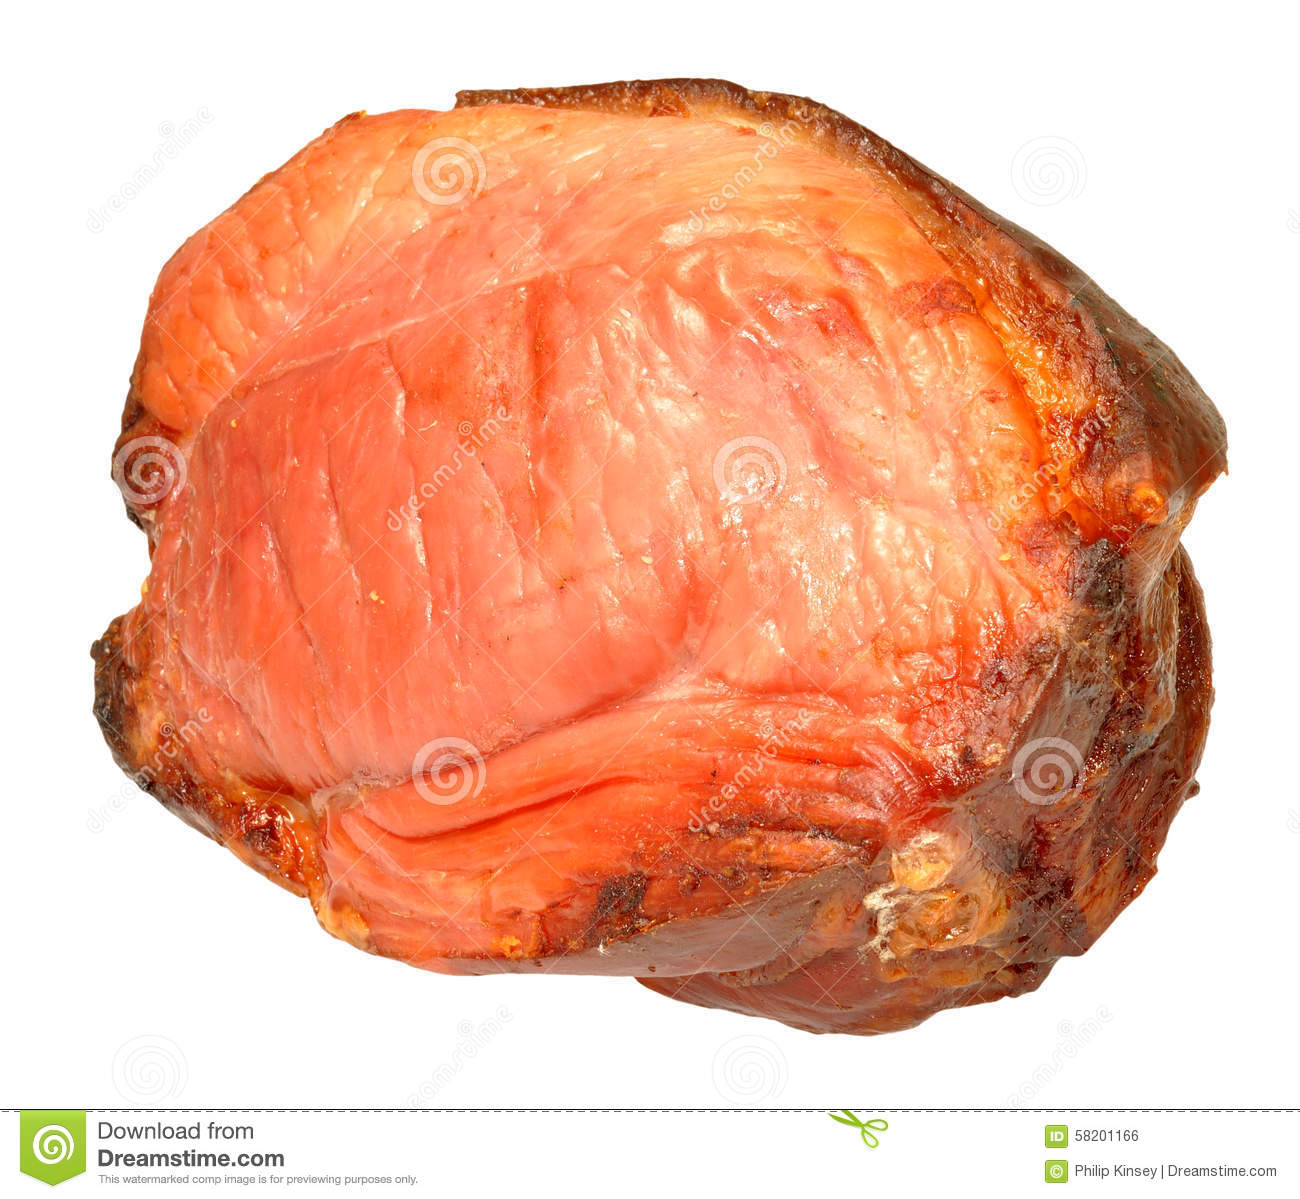 How to Cook Ham Joint